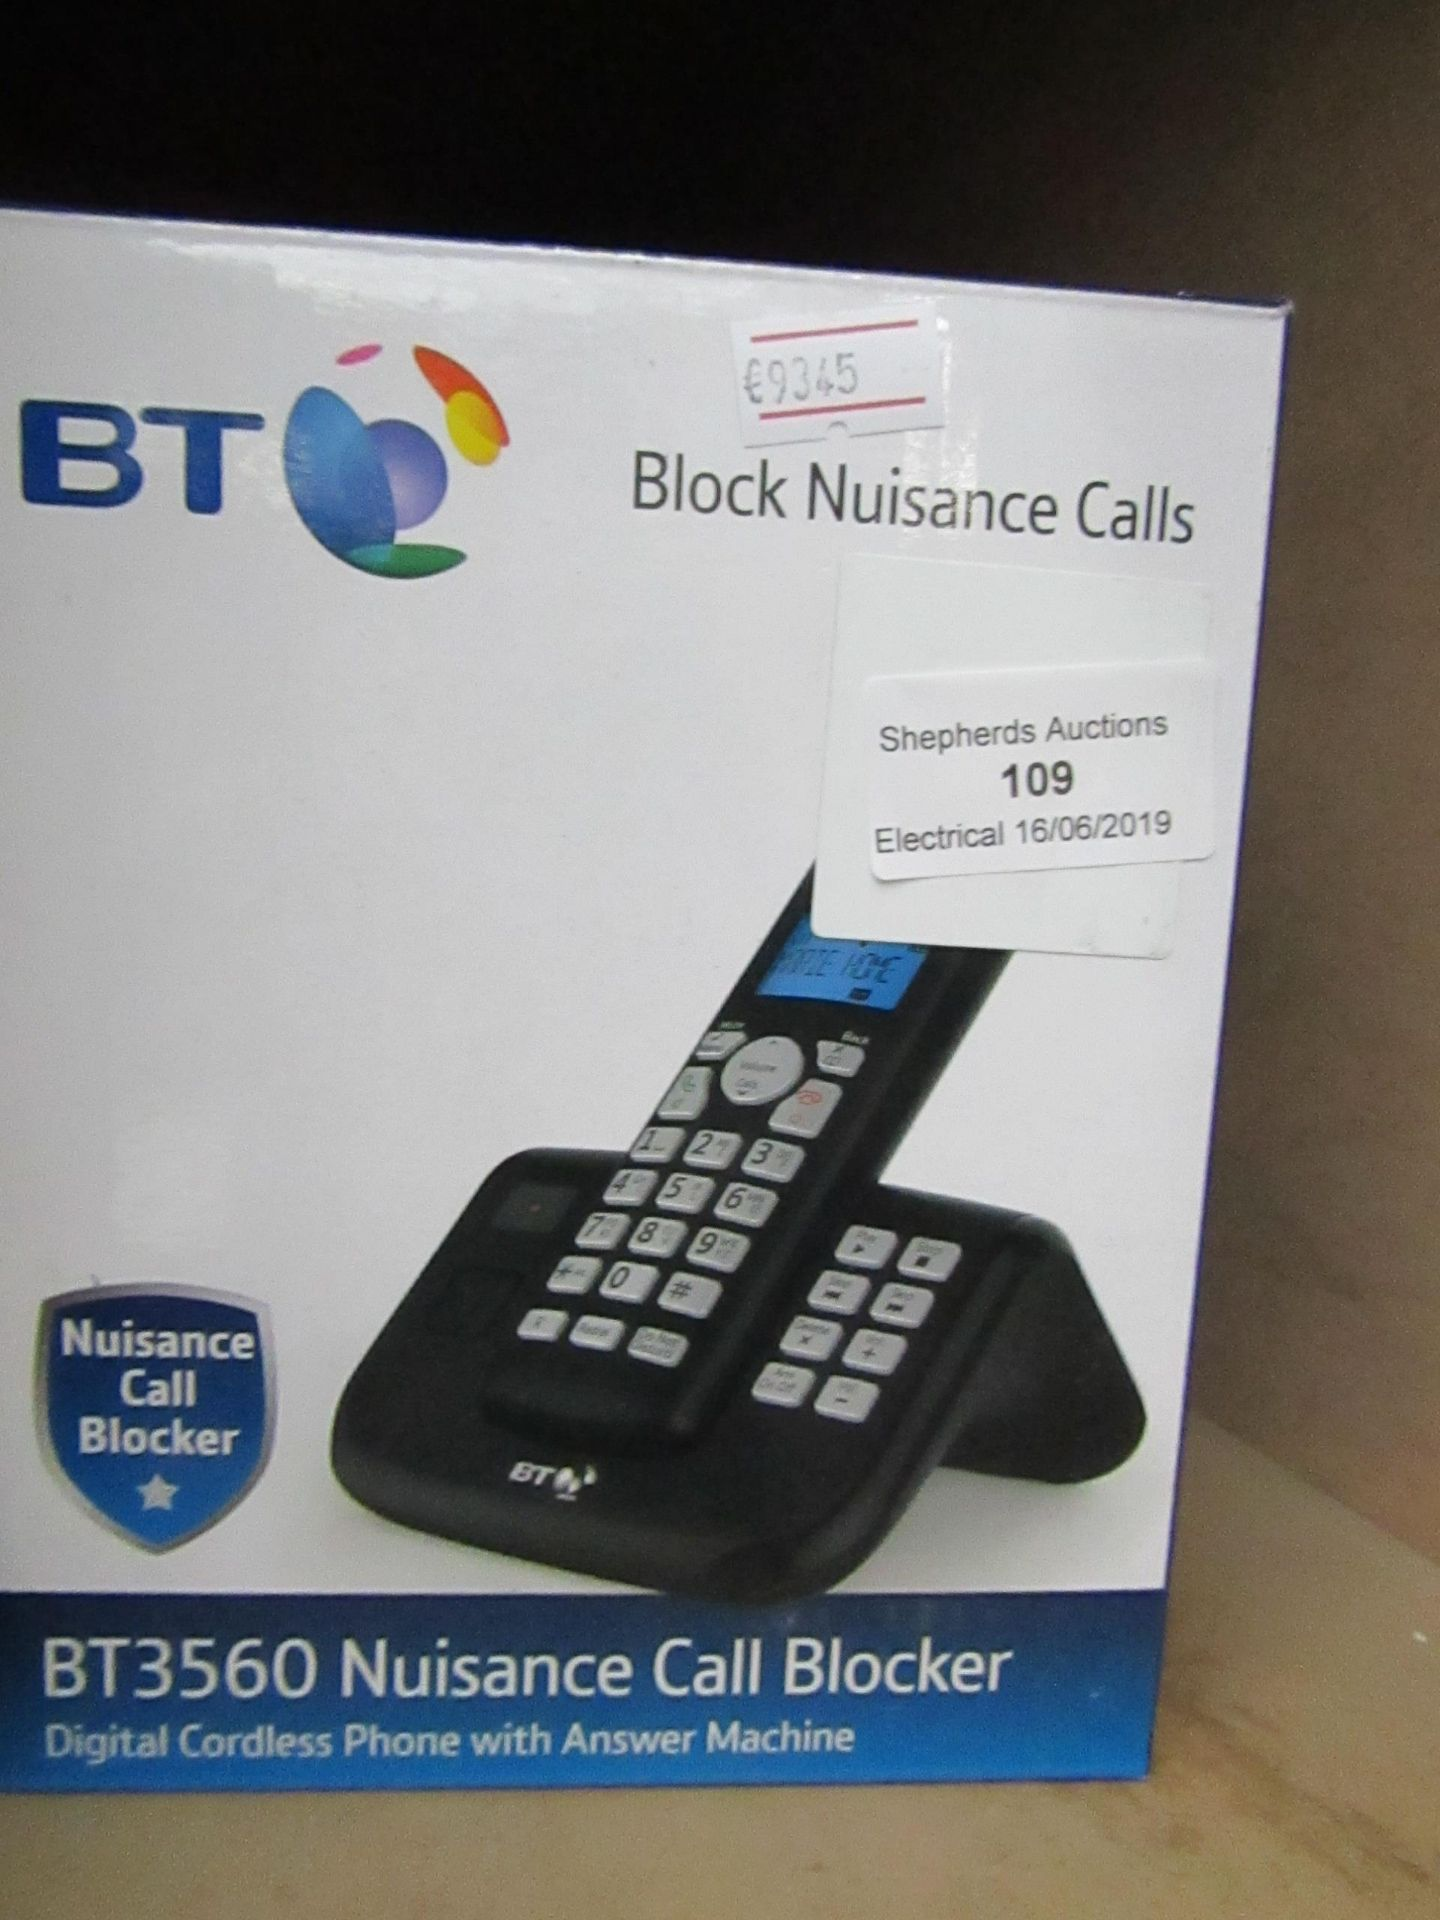 Lot 109 - BT BT3560 nuisance call blocker single digital cordless phone with answering machine, complete but